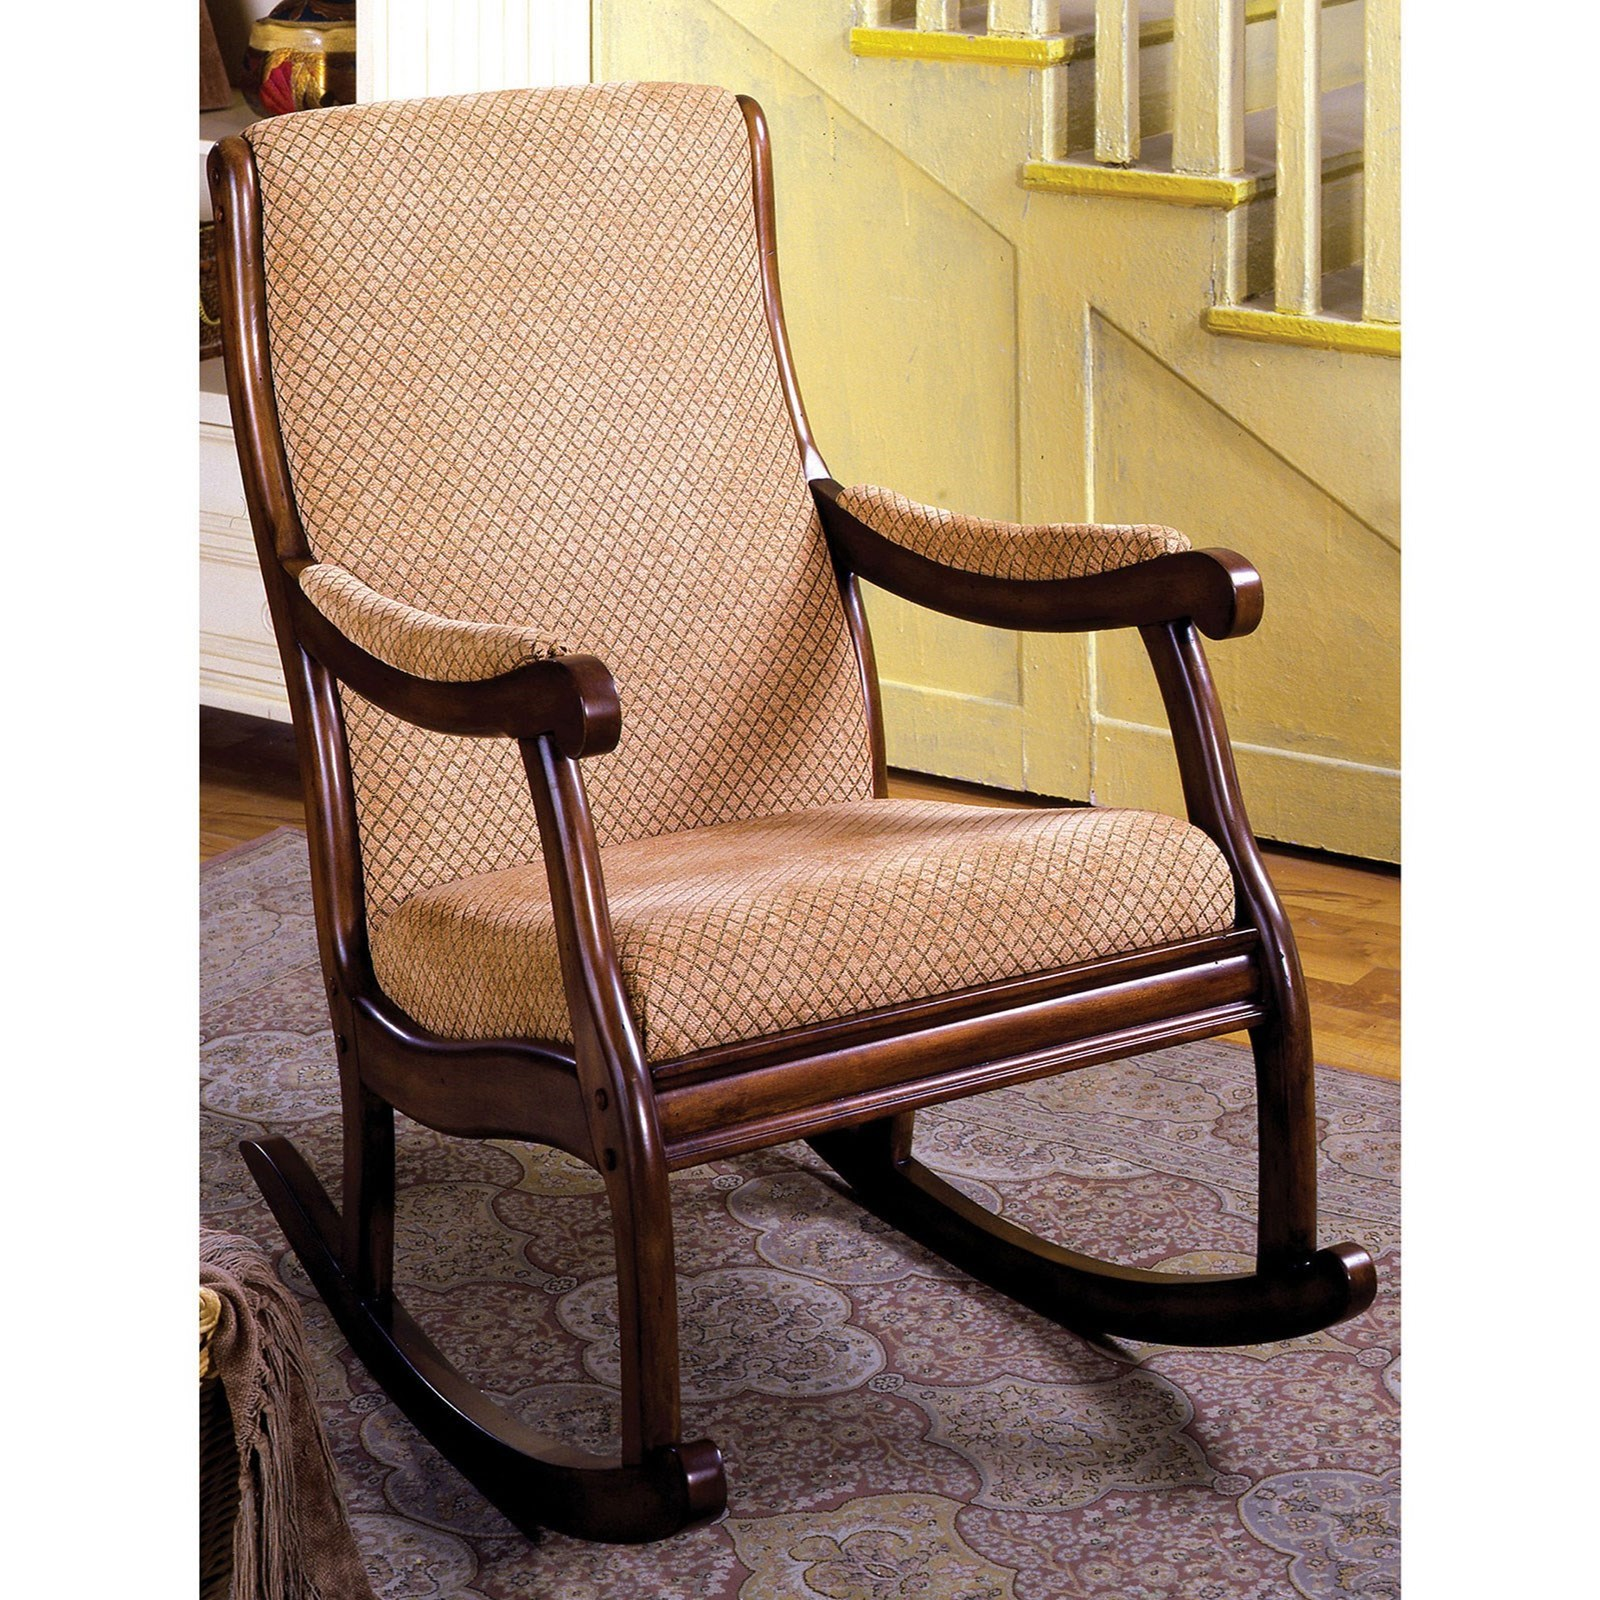 Furniture Of America Liverpool Traditional Rocking Chair With Scrolled Wood Arms Dream Home Interiors Upholstered Rockers